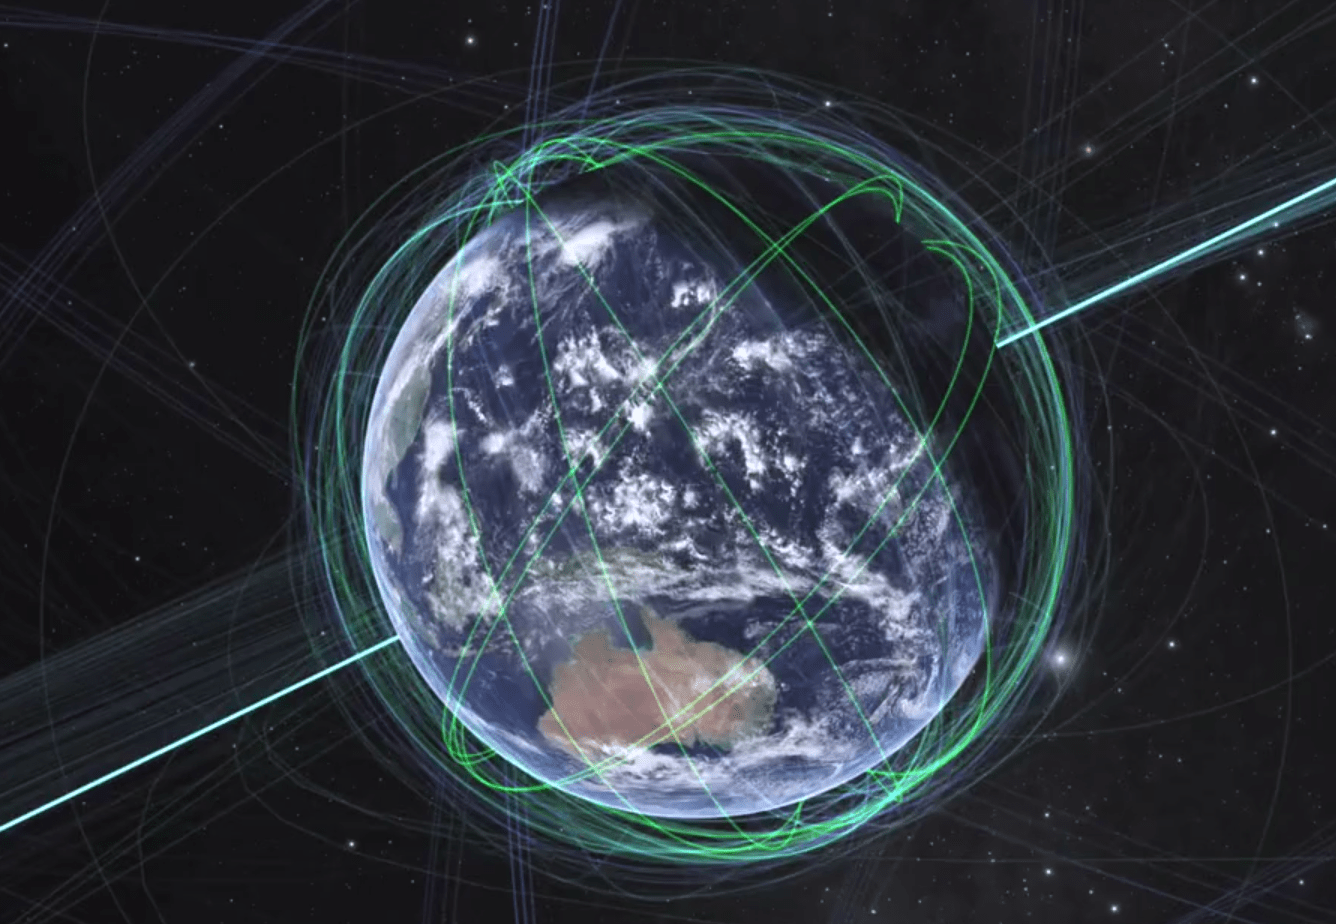 Spacex details plans to launch thousands of internet for Internet plante